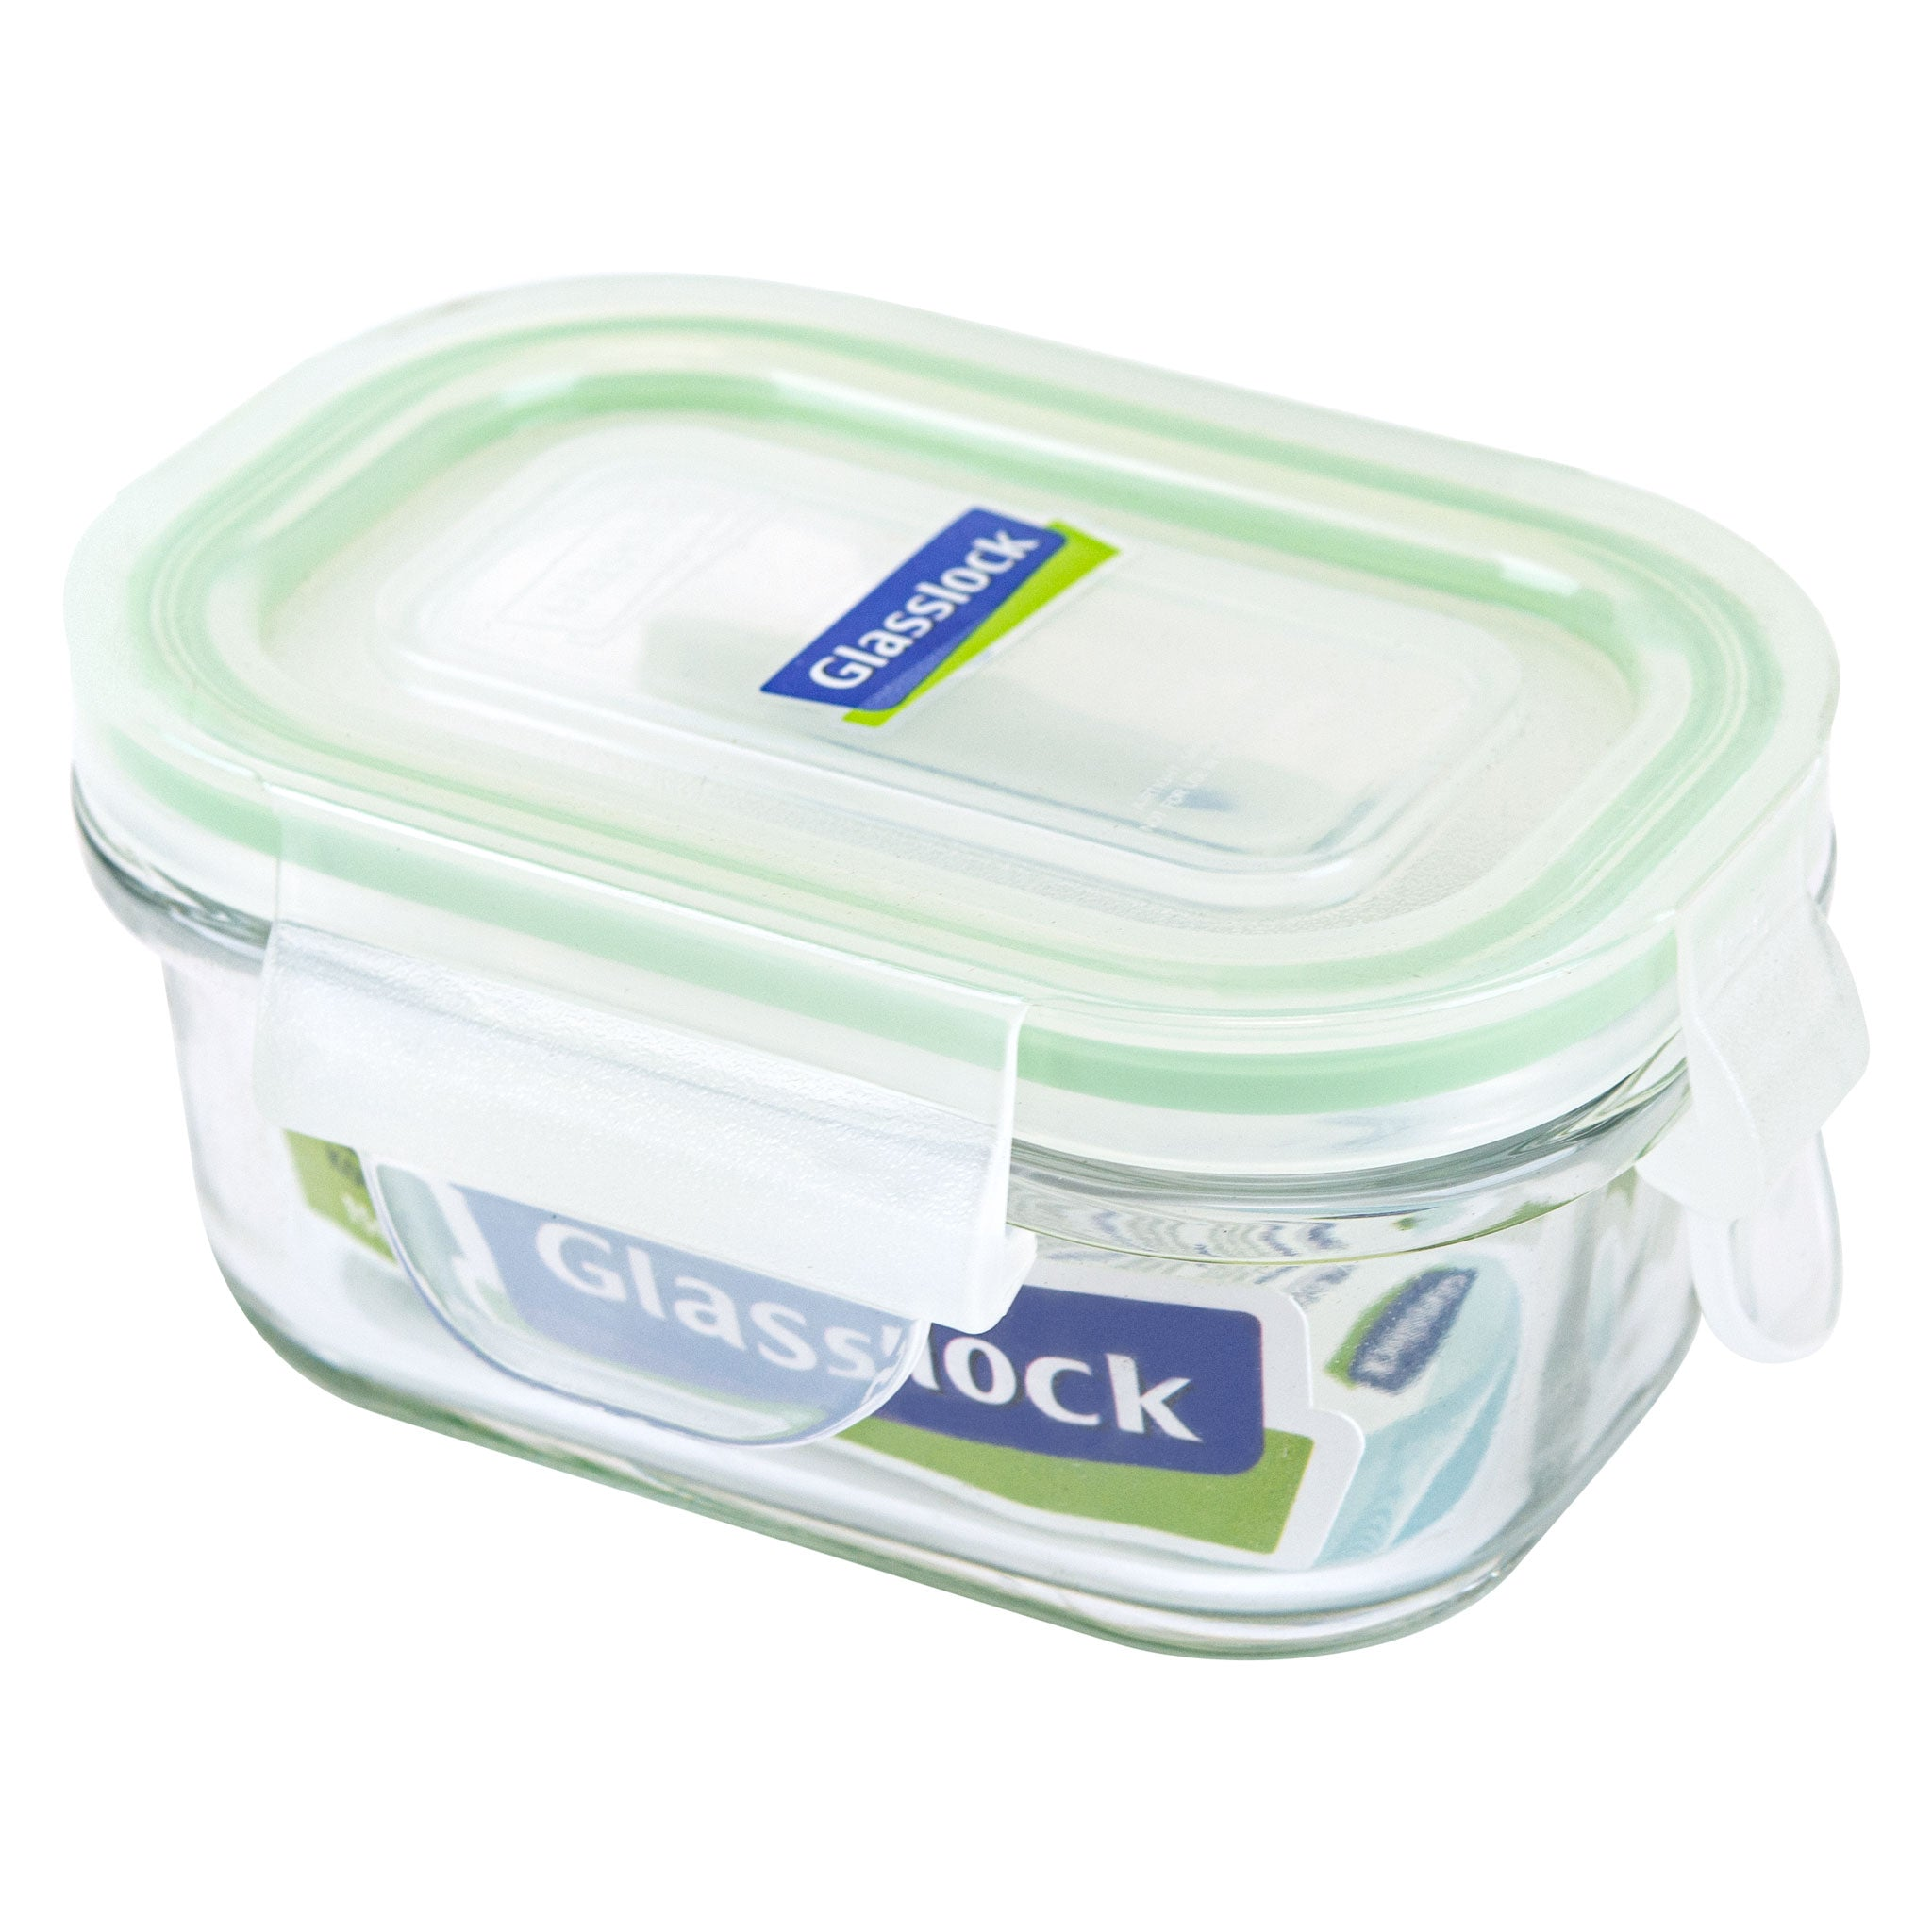 Glasslock Airtight Rectangular Glass Storage Container (5 oz)